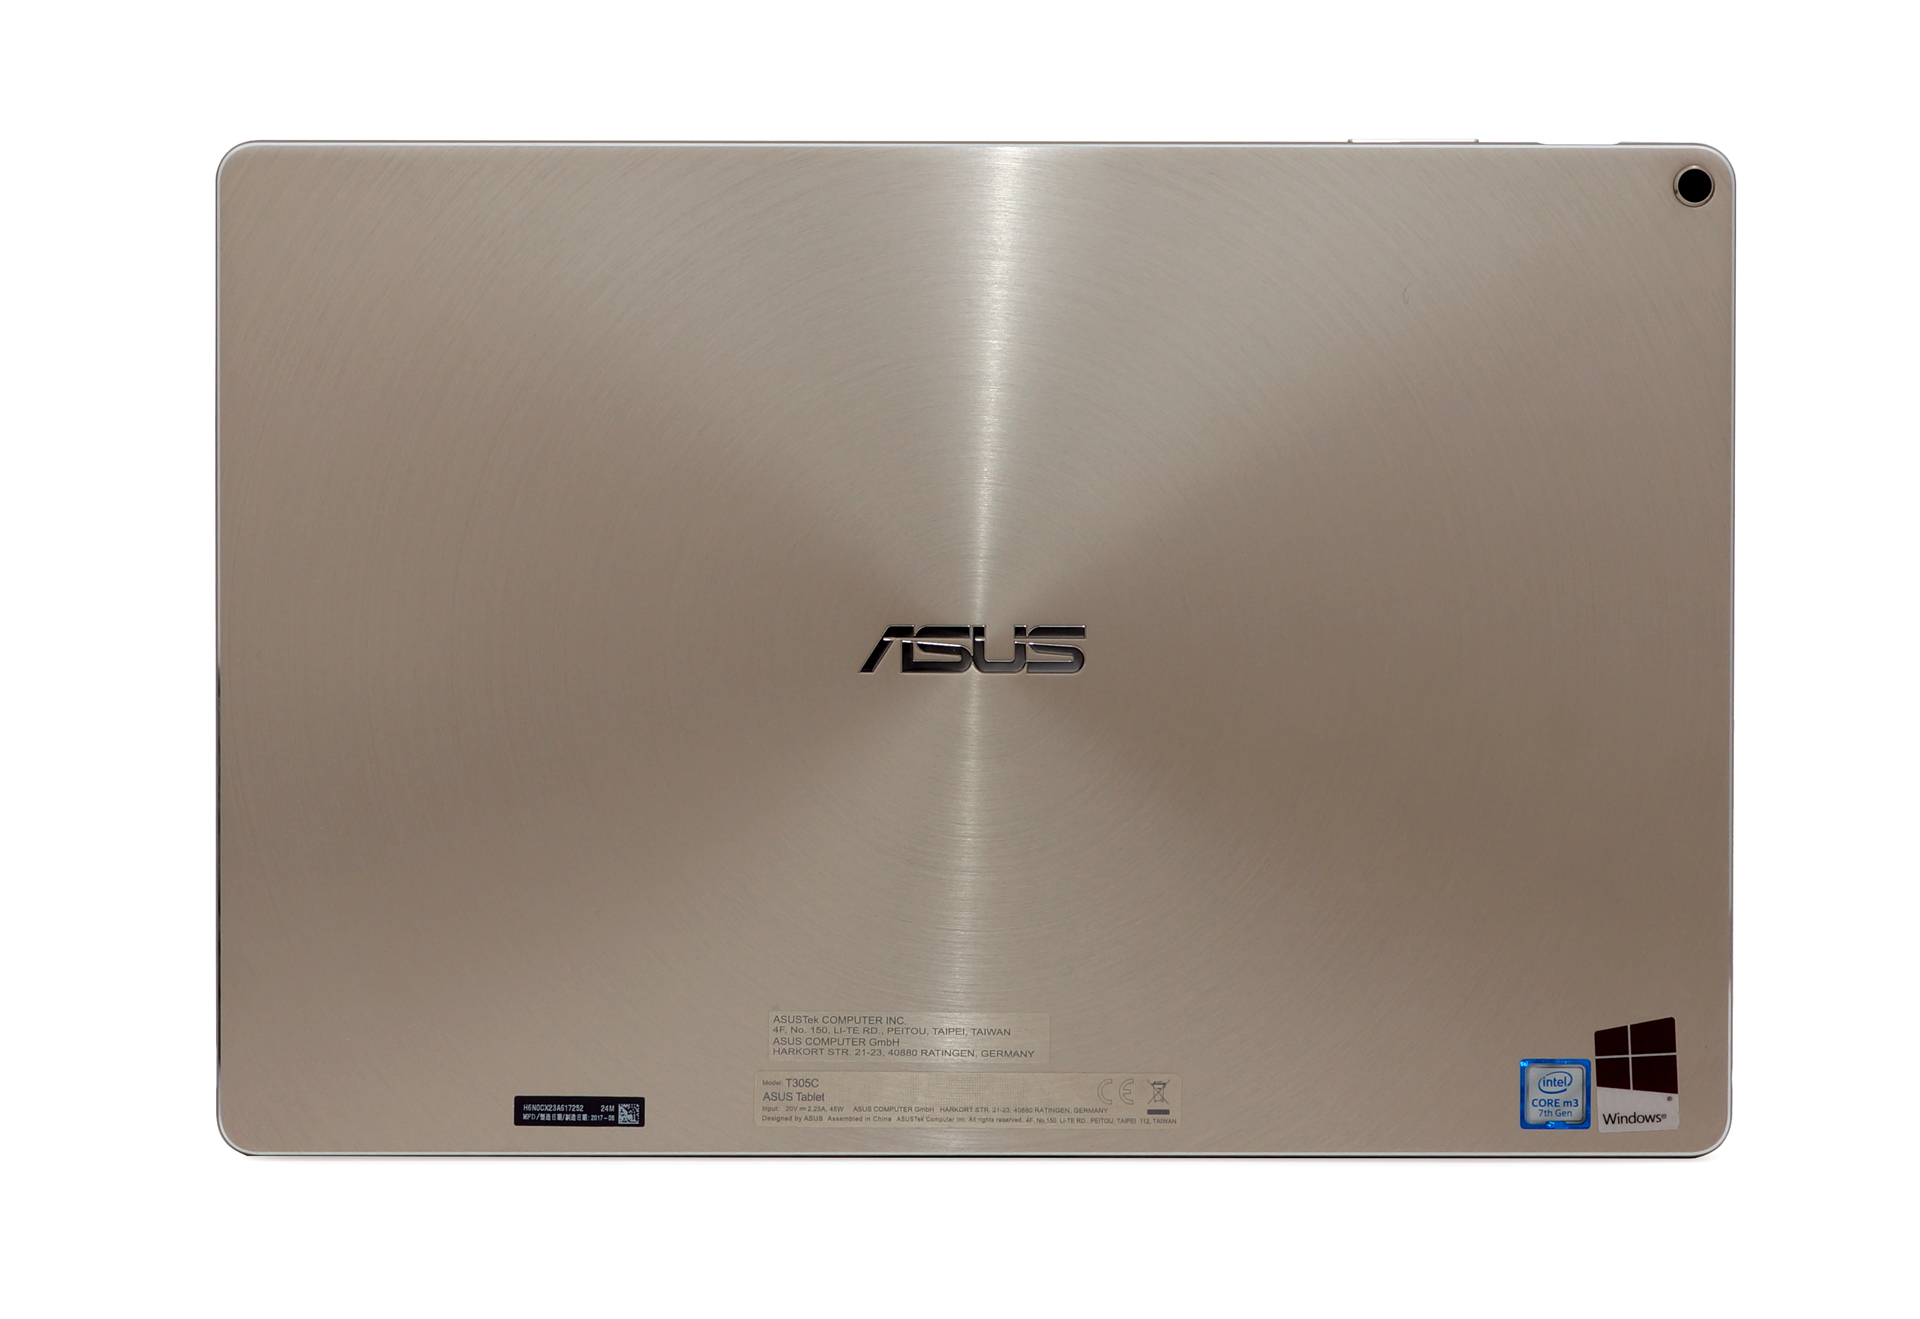 ASUS TRANSFORMER 3 T305CA CAMERA WINDOWS 8 DRIVER DOWNLOAD